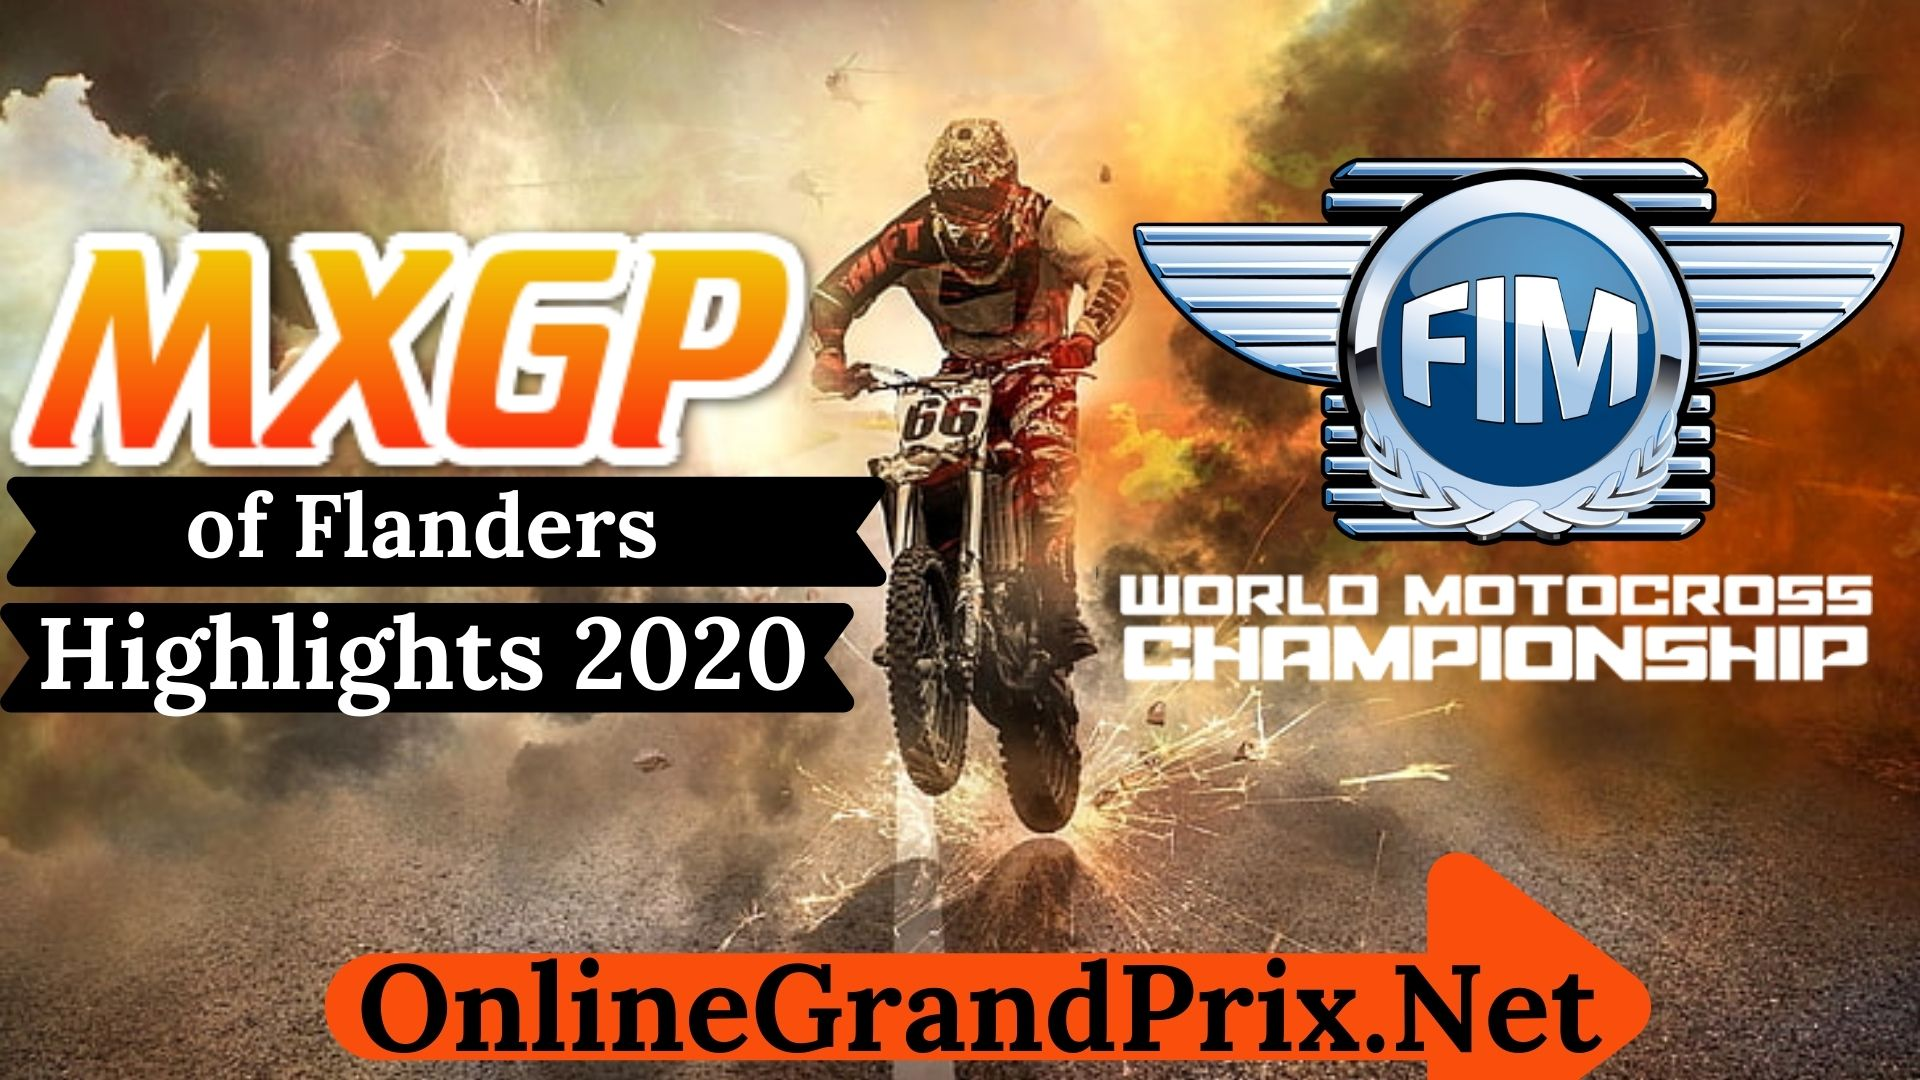 MXGP of Flanders Highlights 2020